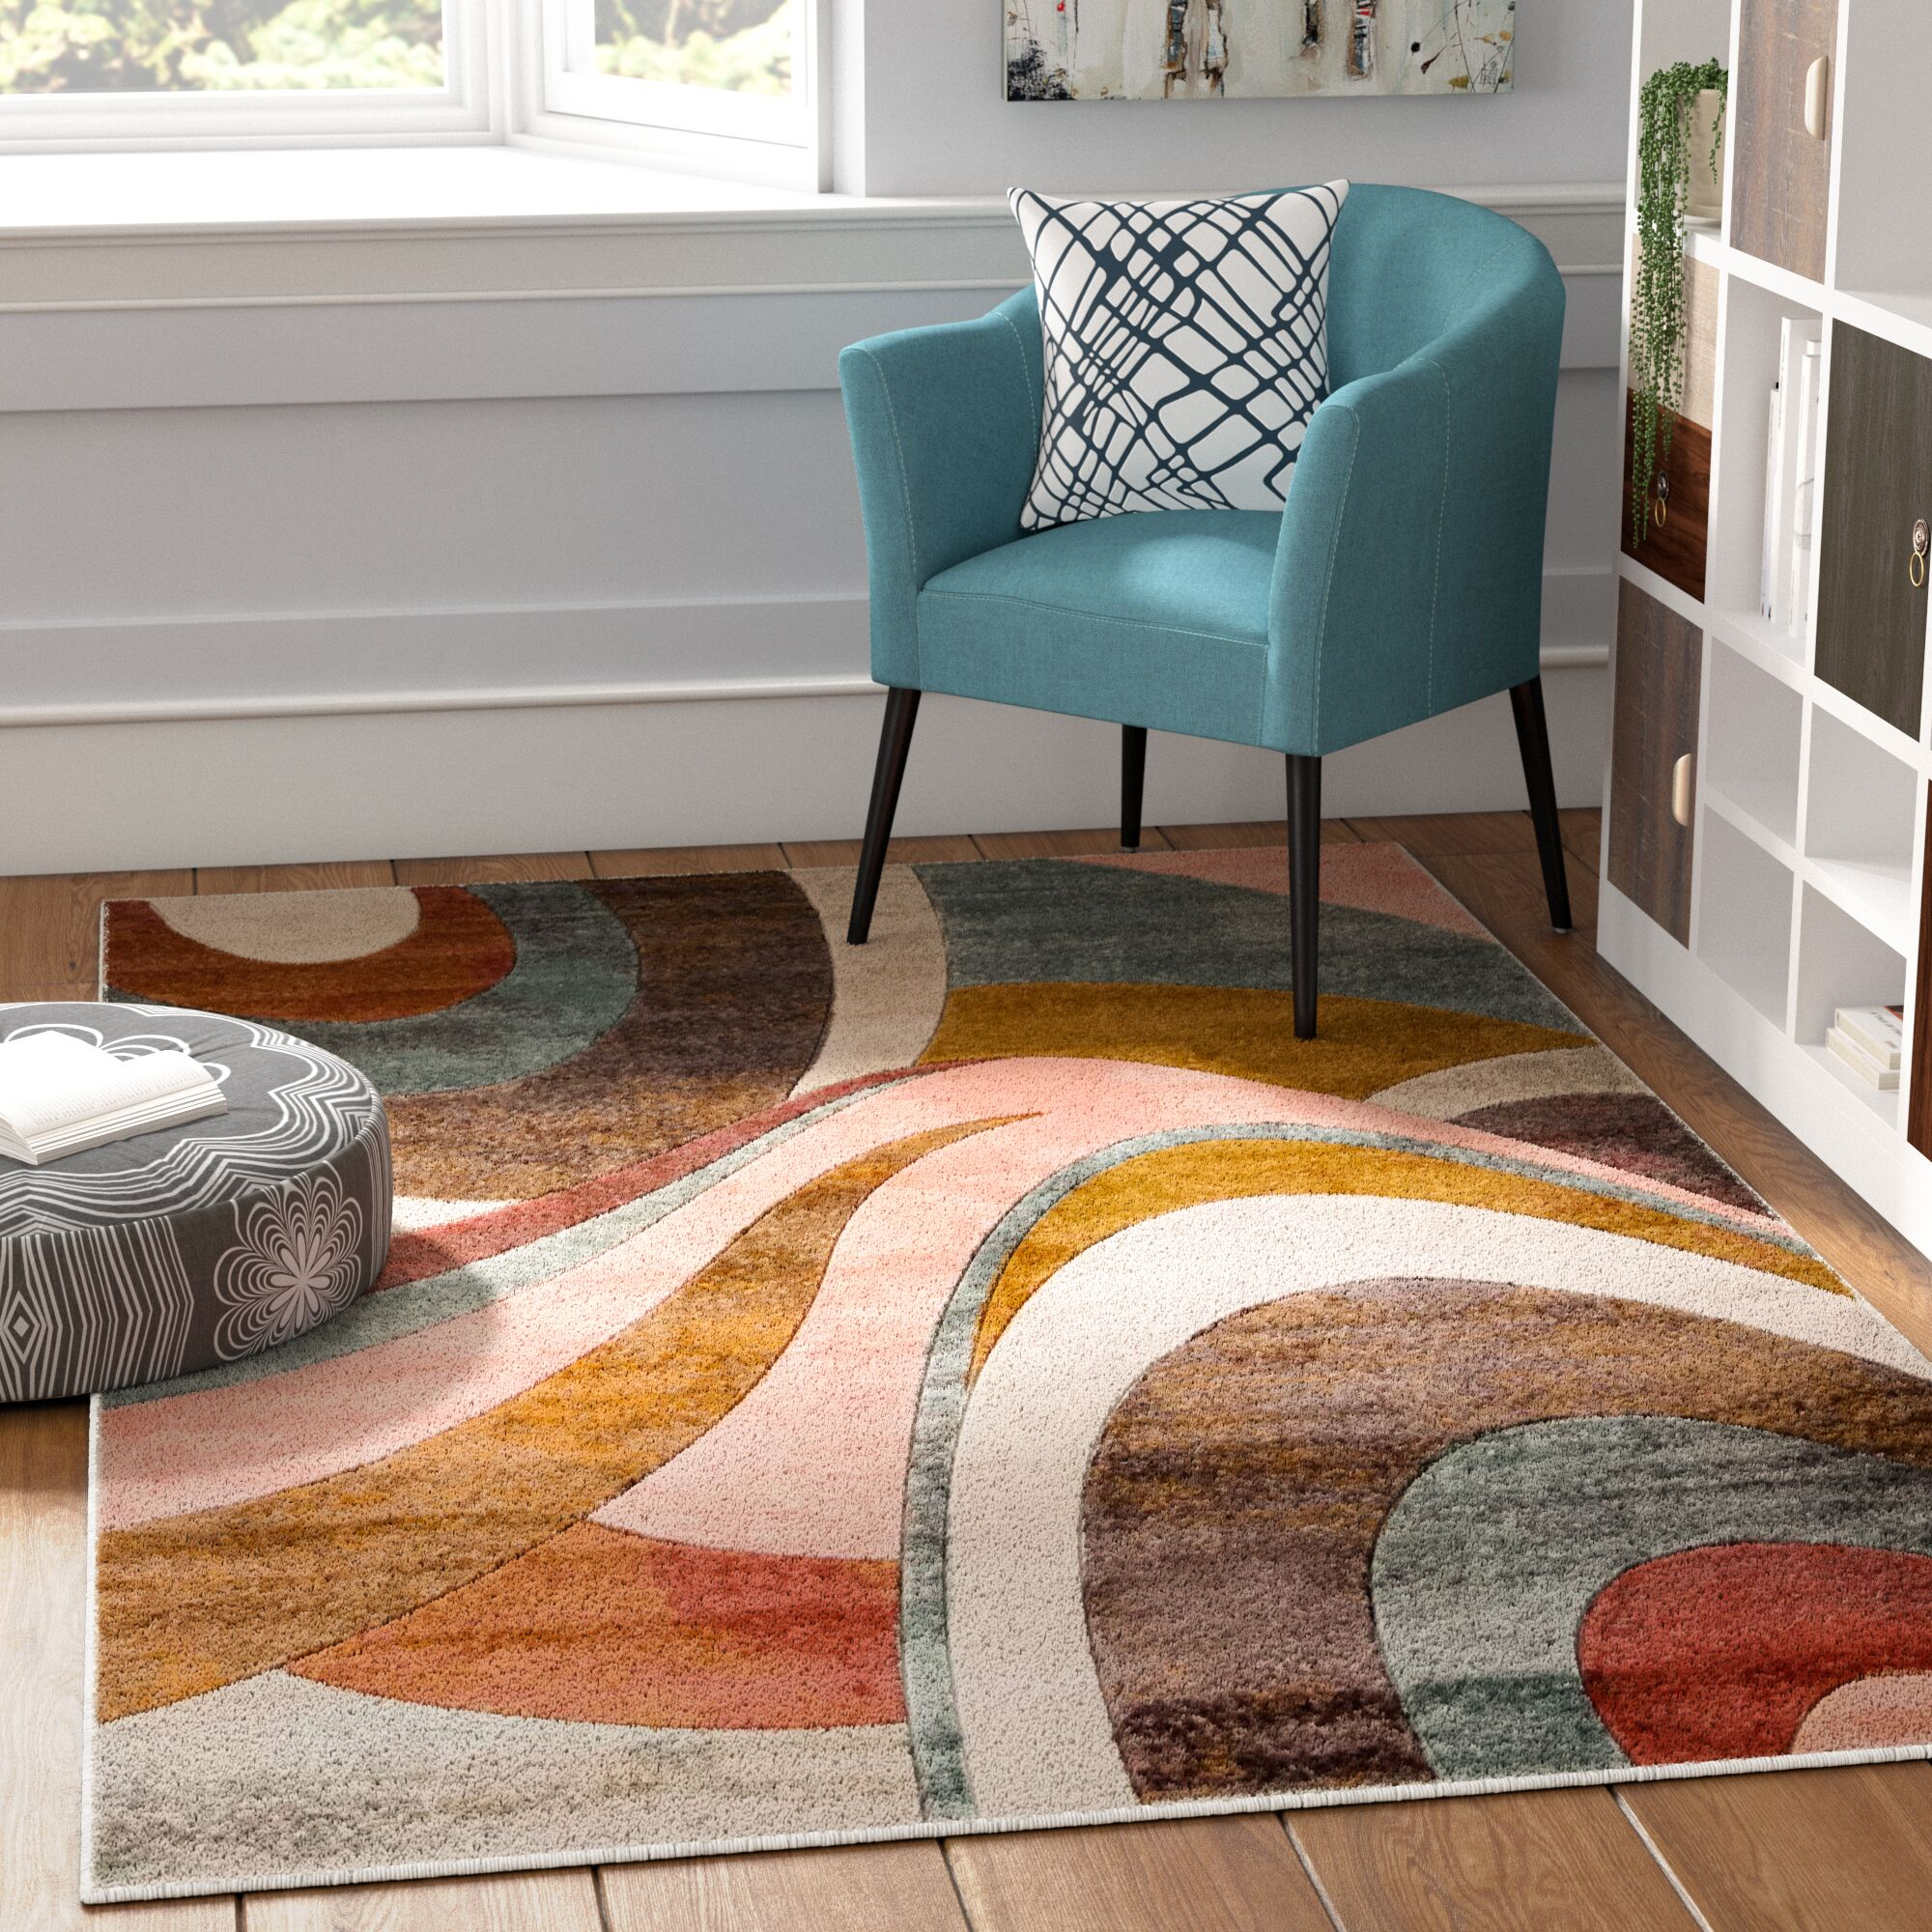 Dufresne Brown/Red Area Rug Rug Size: Rectangle 5'2